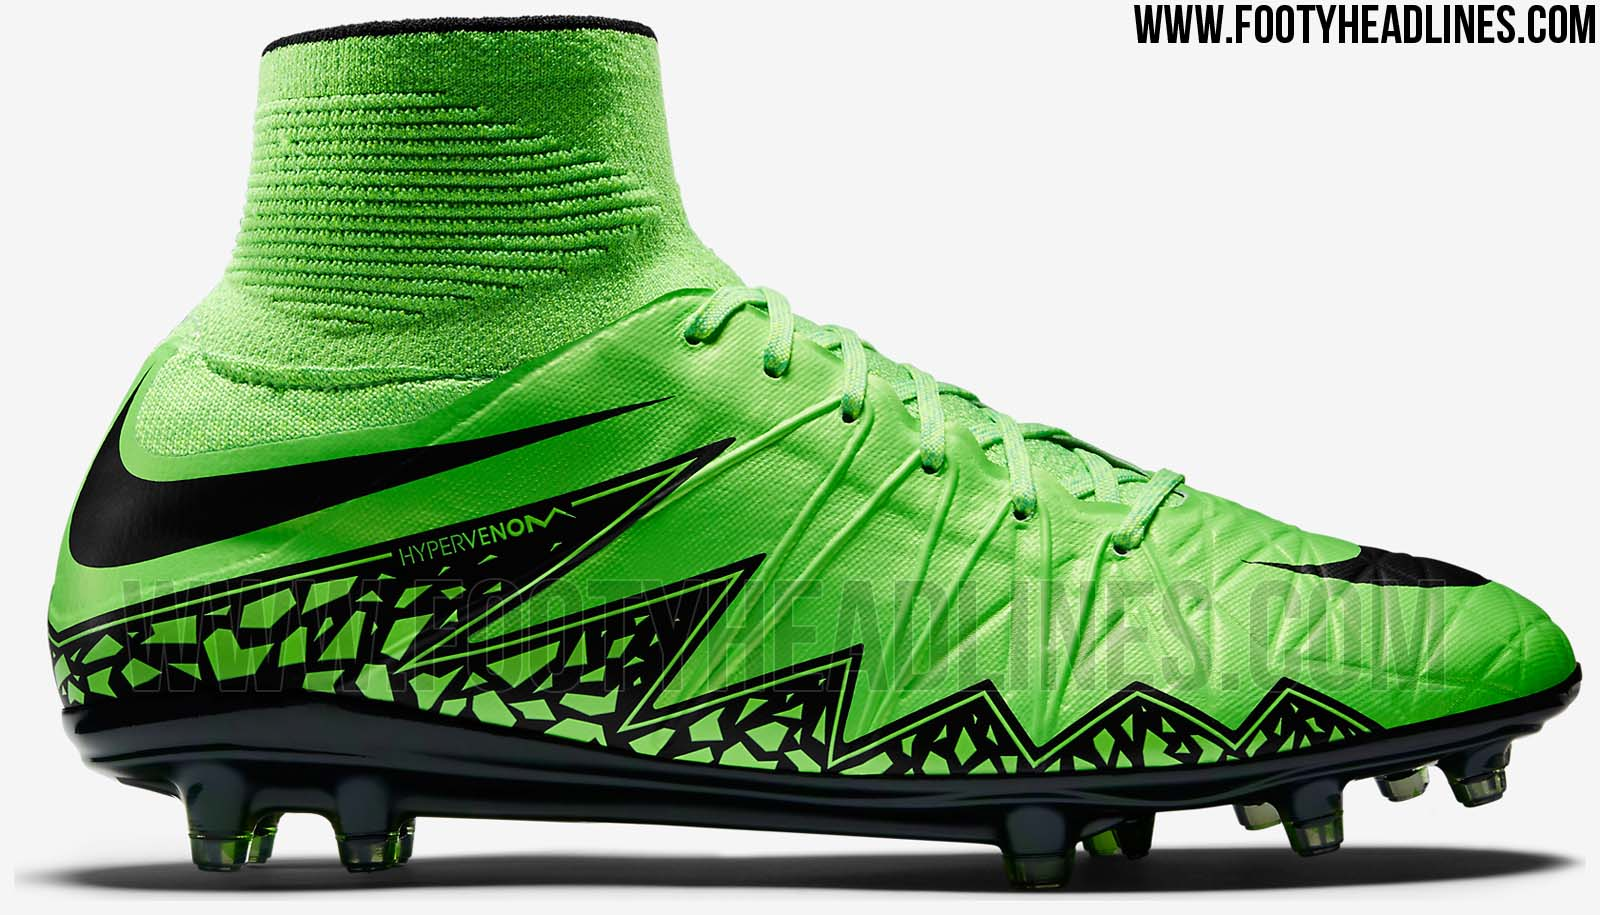 green nike hypervenom ii 2015 boots released footy headlines. Black Bedroom Furniture Sets. Home Design Ideas